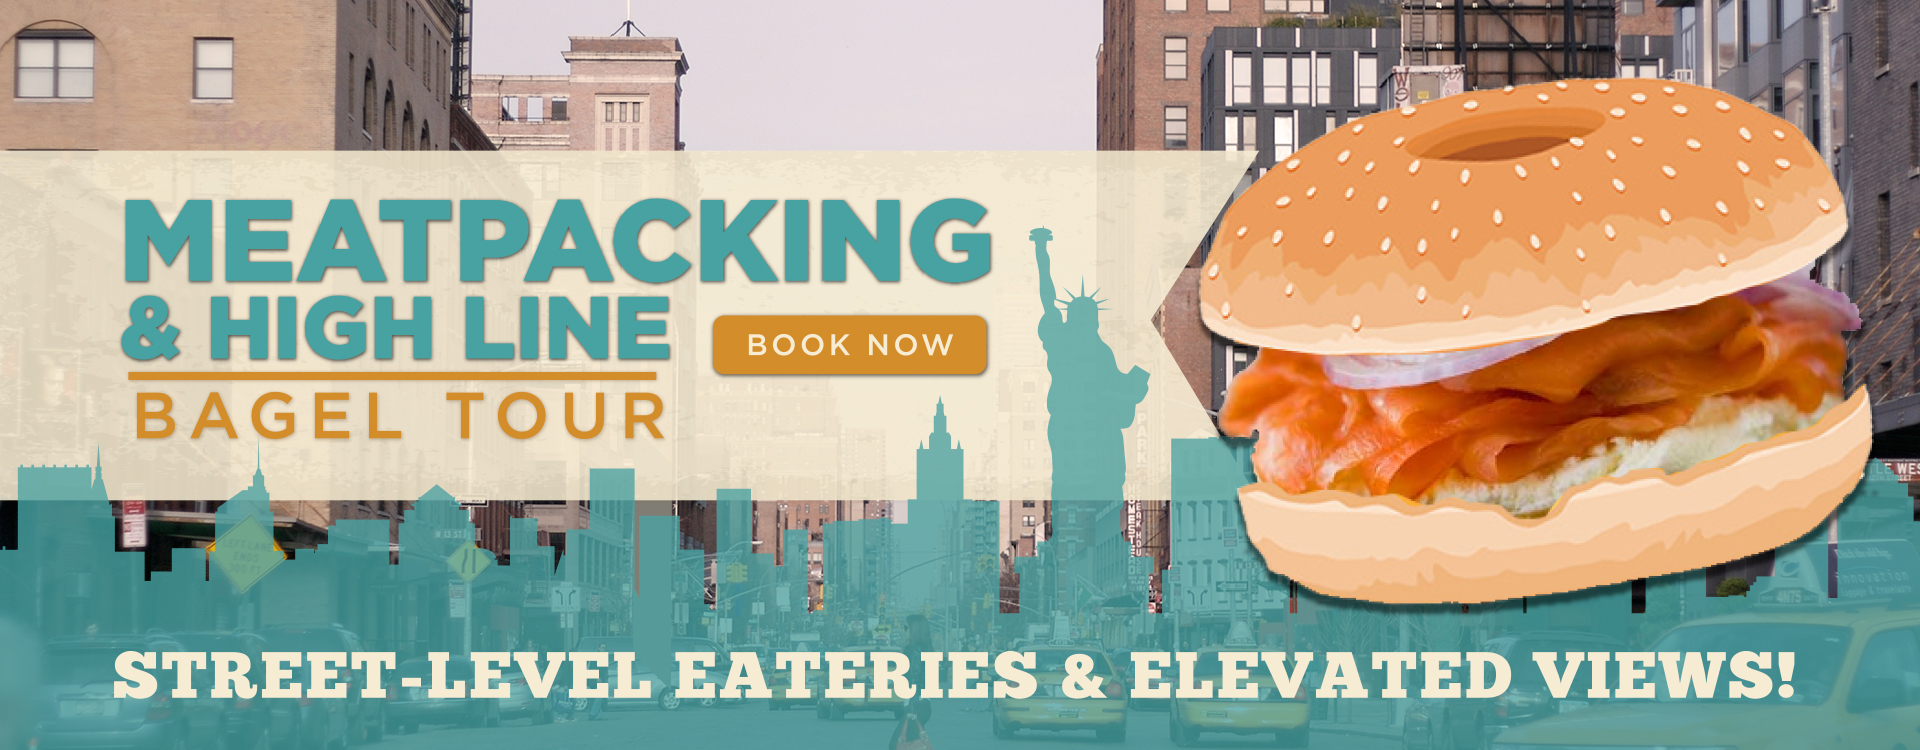 Bens Bagel Tour -Meat Packing&High Line